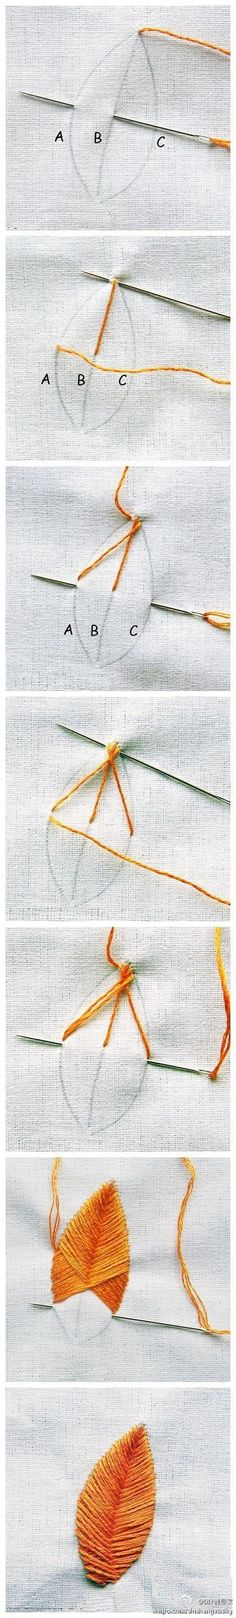 Leaf embroidery stitch